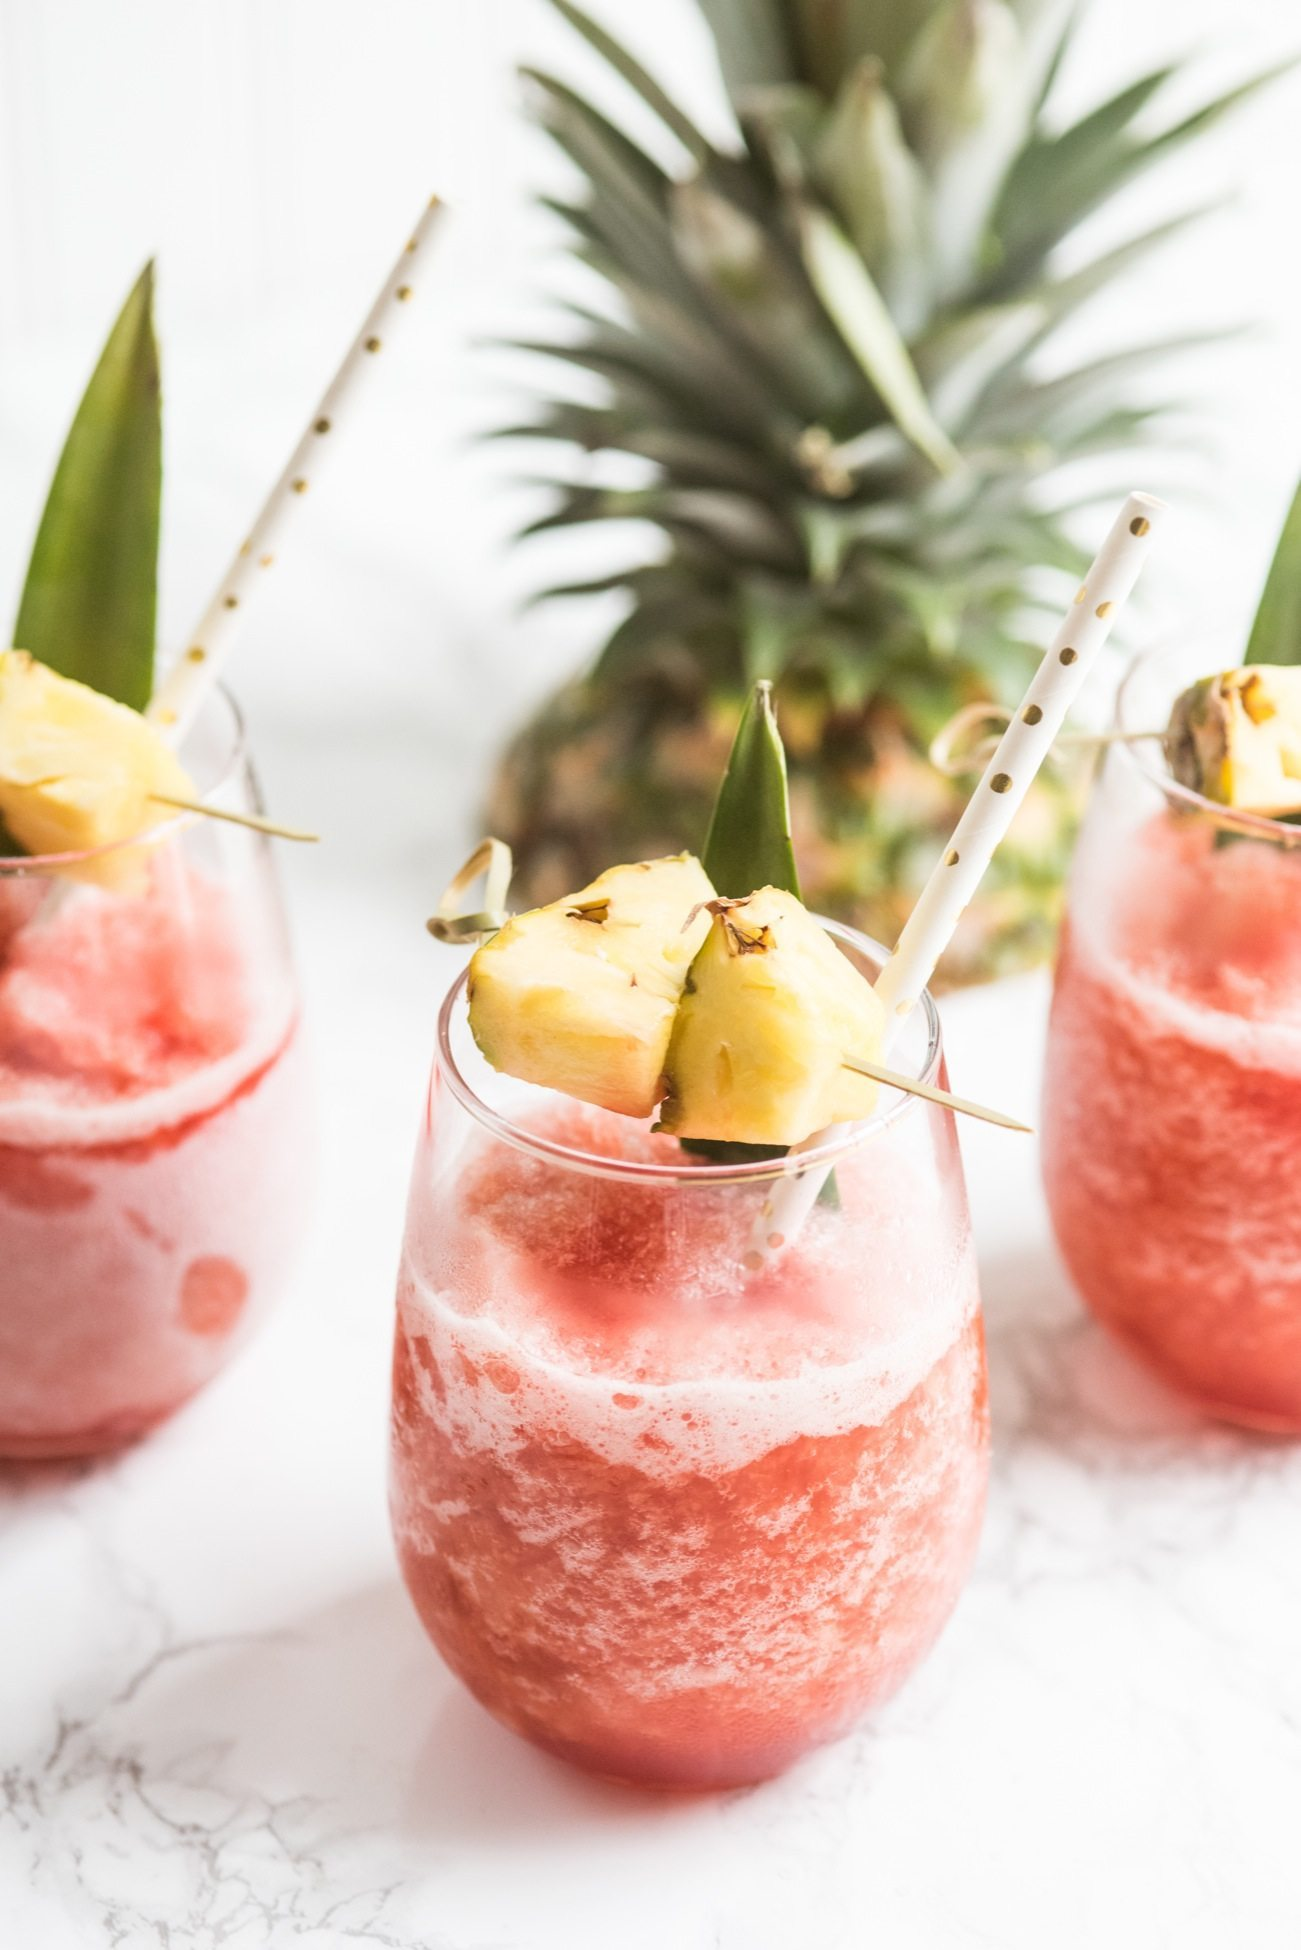 Coconut Pineapple Rum Slush Tropical Cocktail Recipe | Tropical cocktails, cocktail recipes, party ideas, entertaining tips and more from @cydconverse